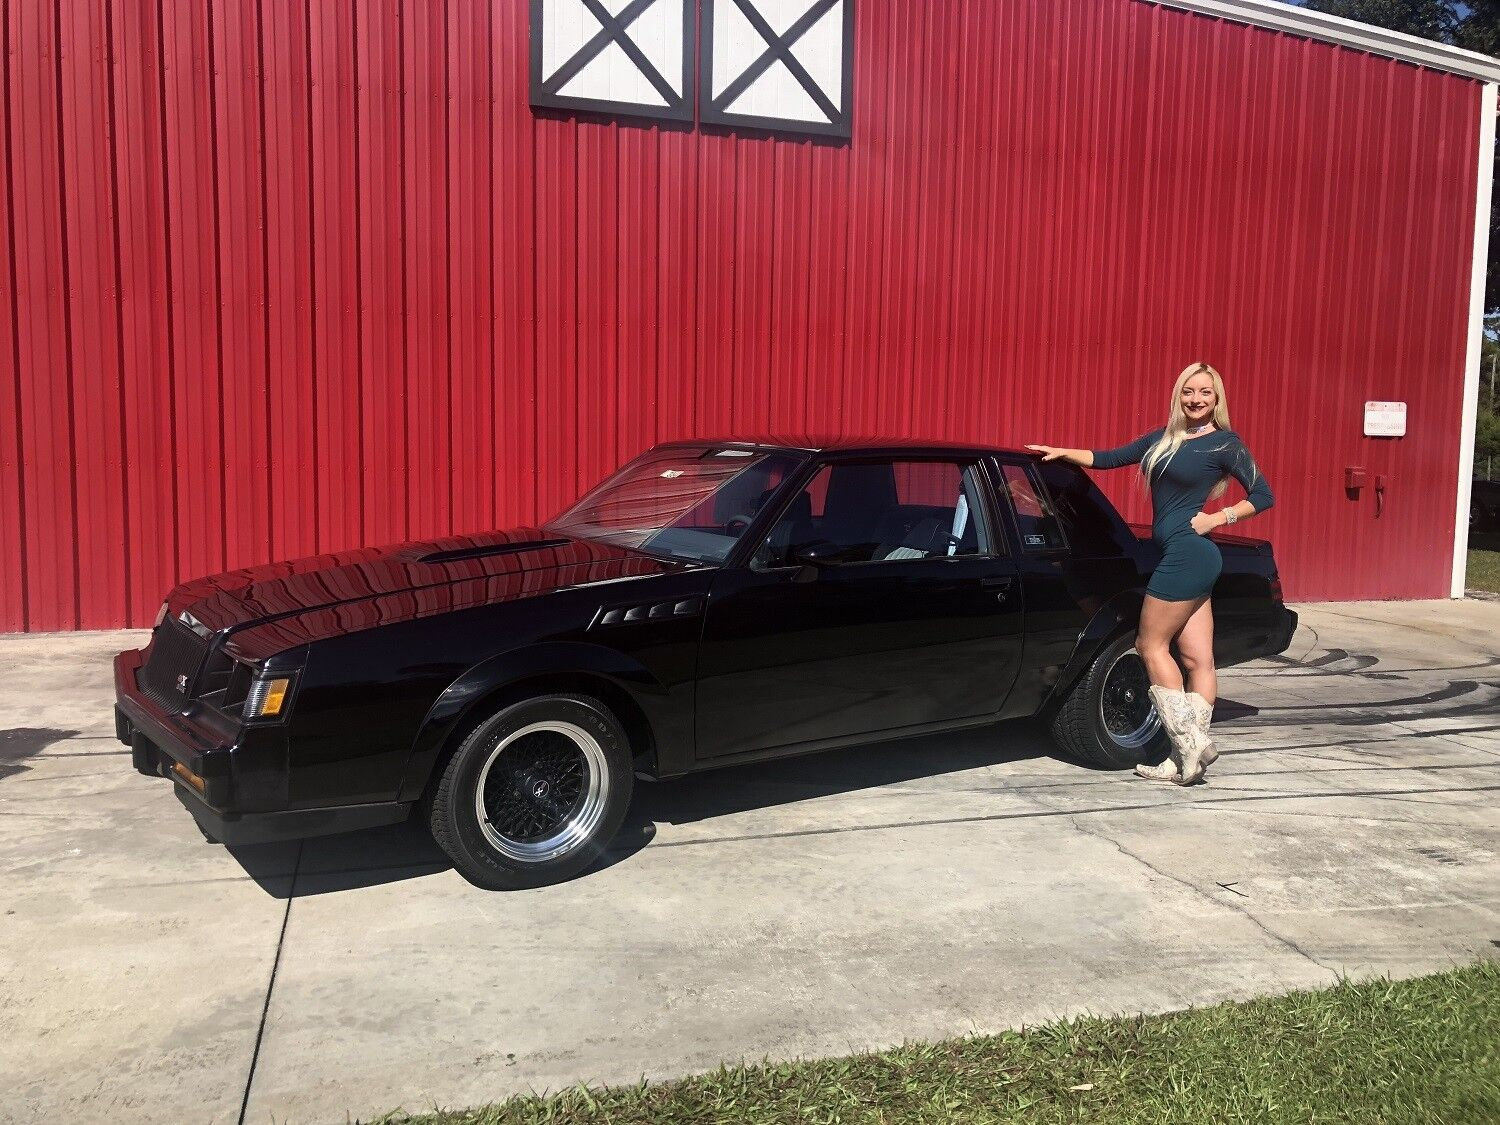 1987 Buick Grand National Grand National Turbo Very rare GNX optioned Buick turbo turbocharged original collector documented